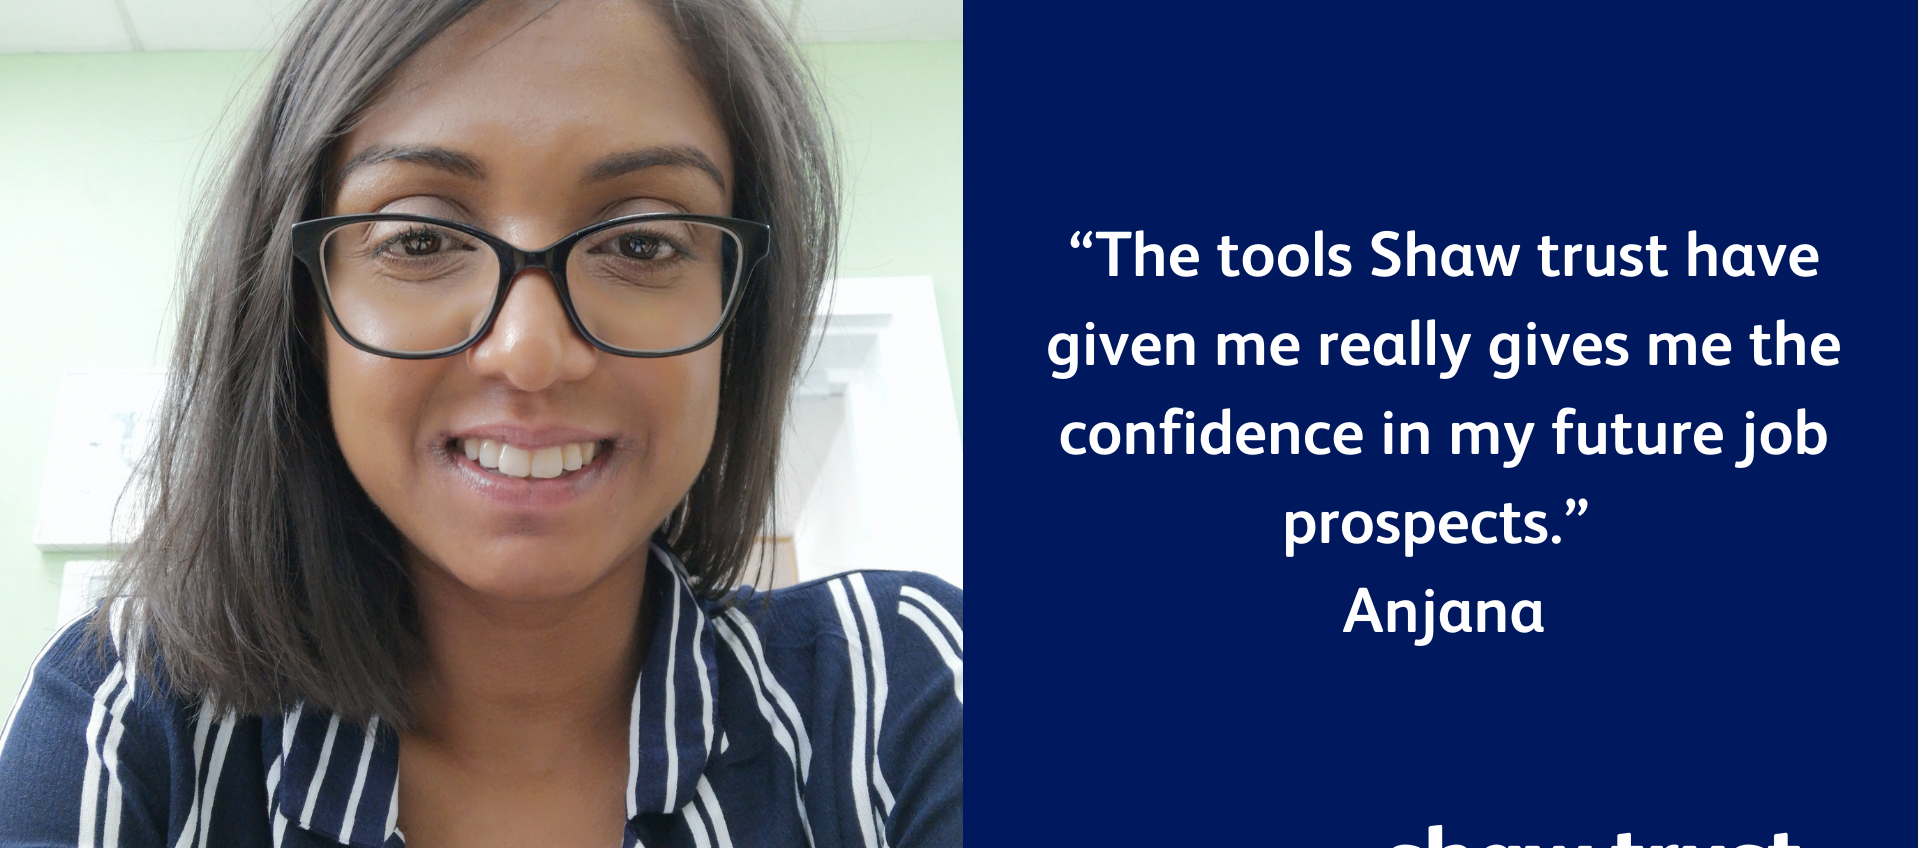 Image of Anjana with a quote